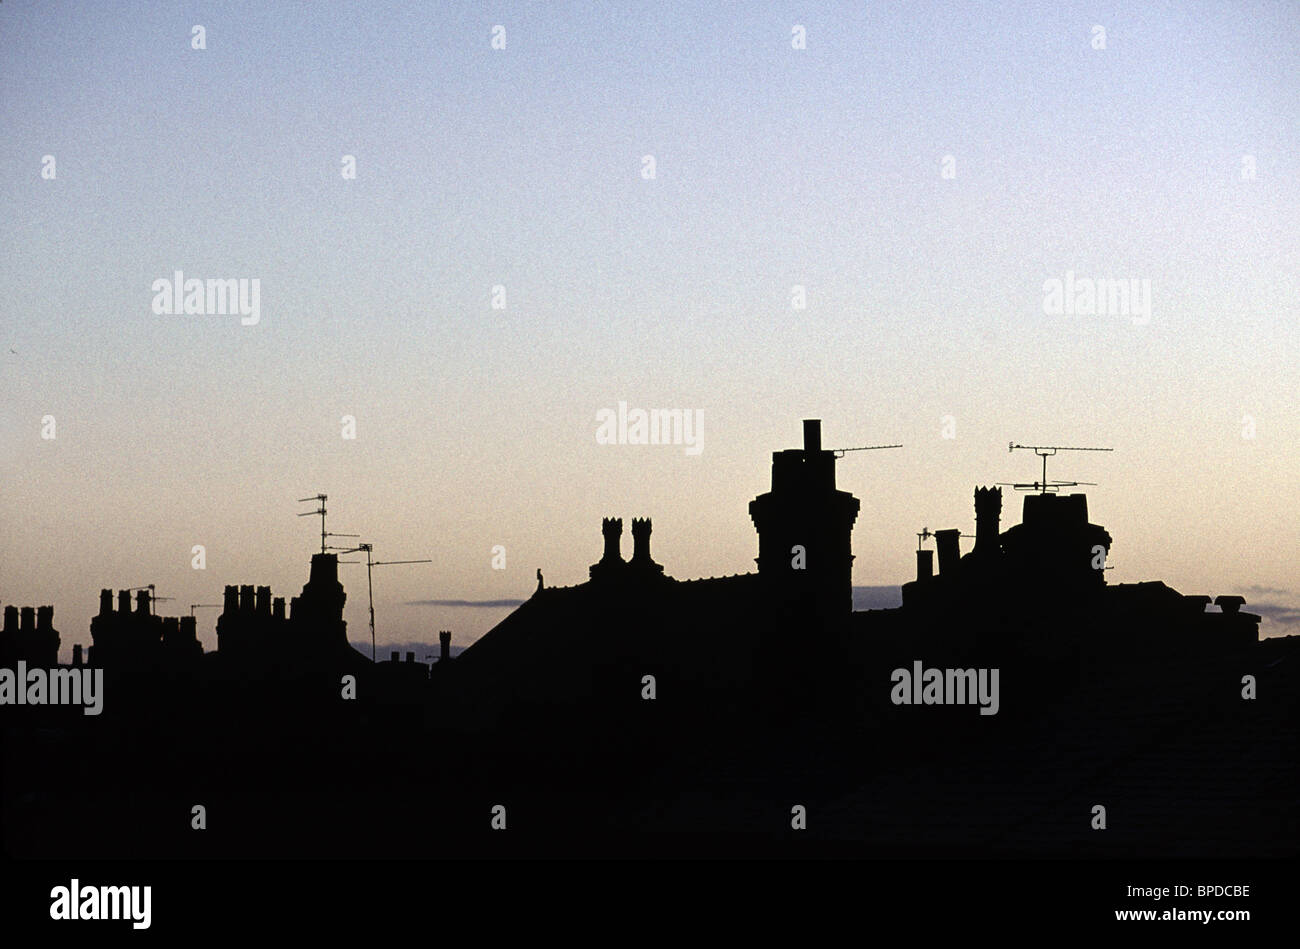 Silhouette Of London Rooftops At Dusk Stock Photo Royalty